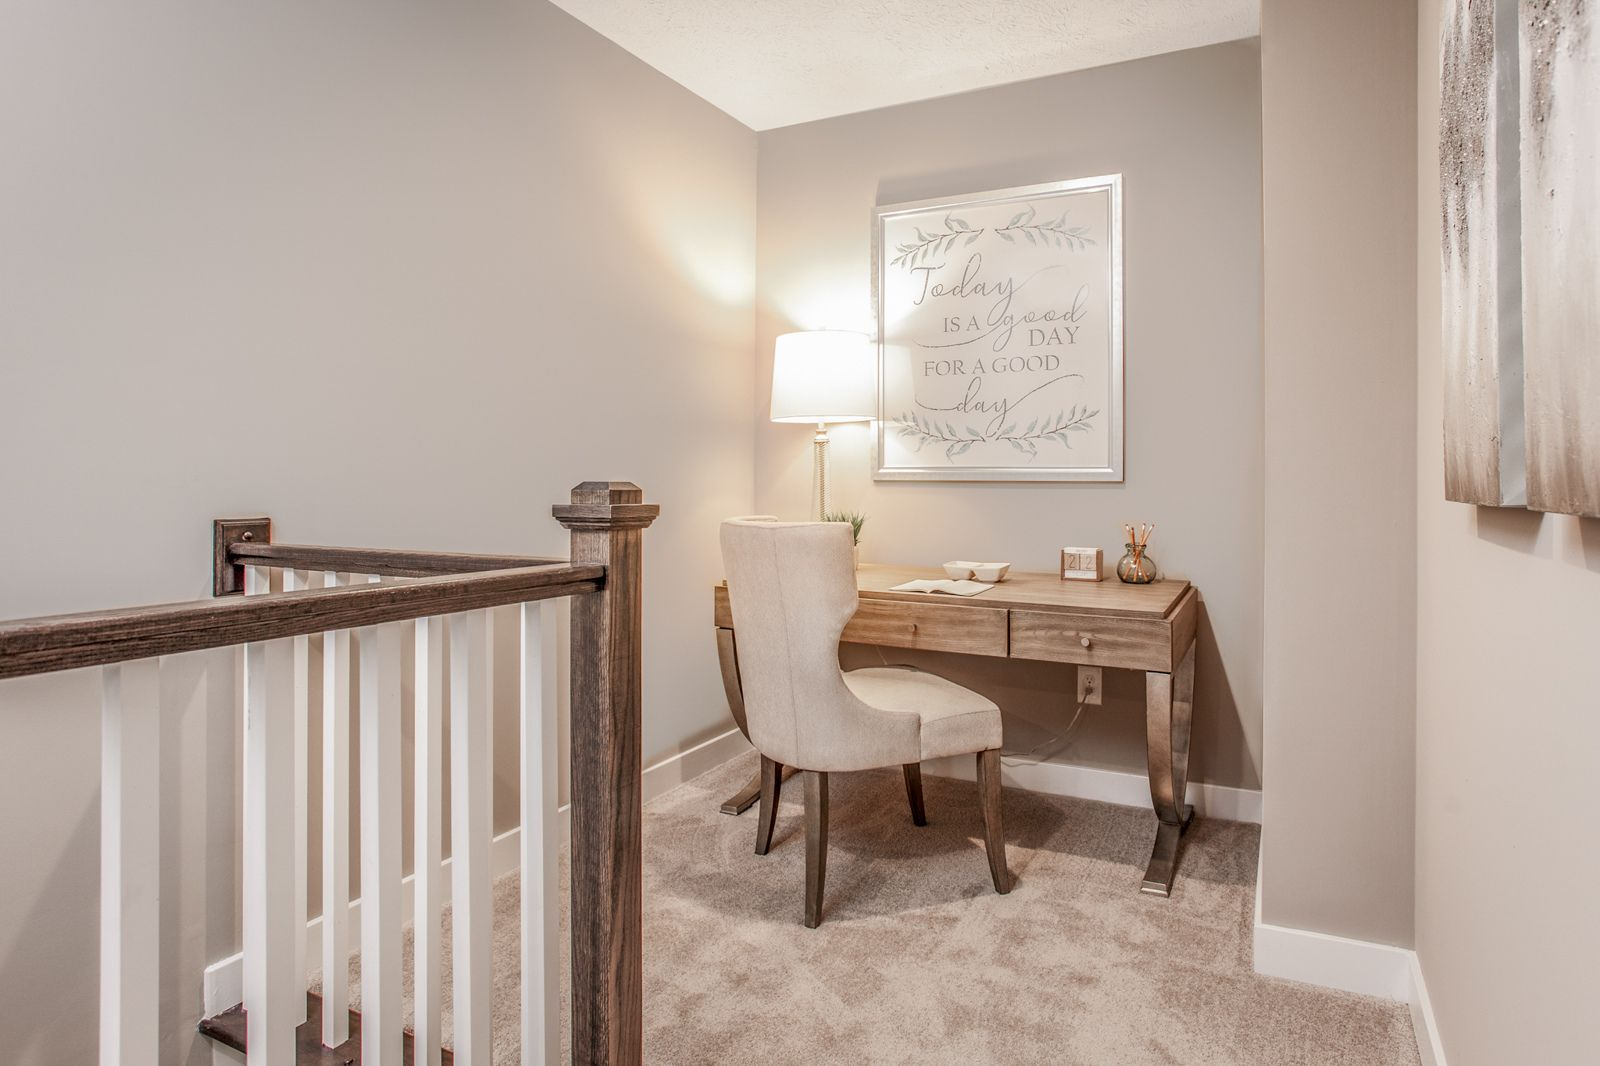 Living Area featured in the Rosecliff Lux w/ 2' Ext, Rec Rm & Bath By Ryan Homes